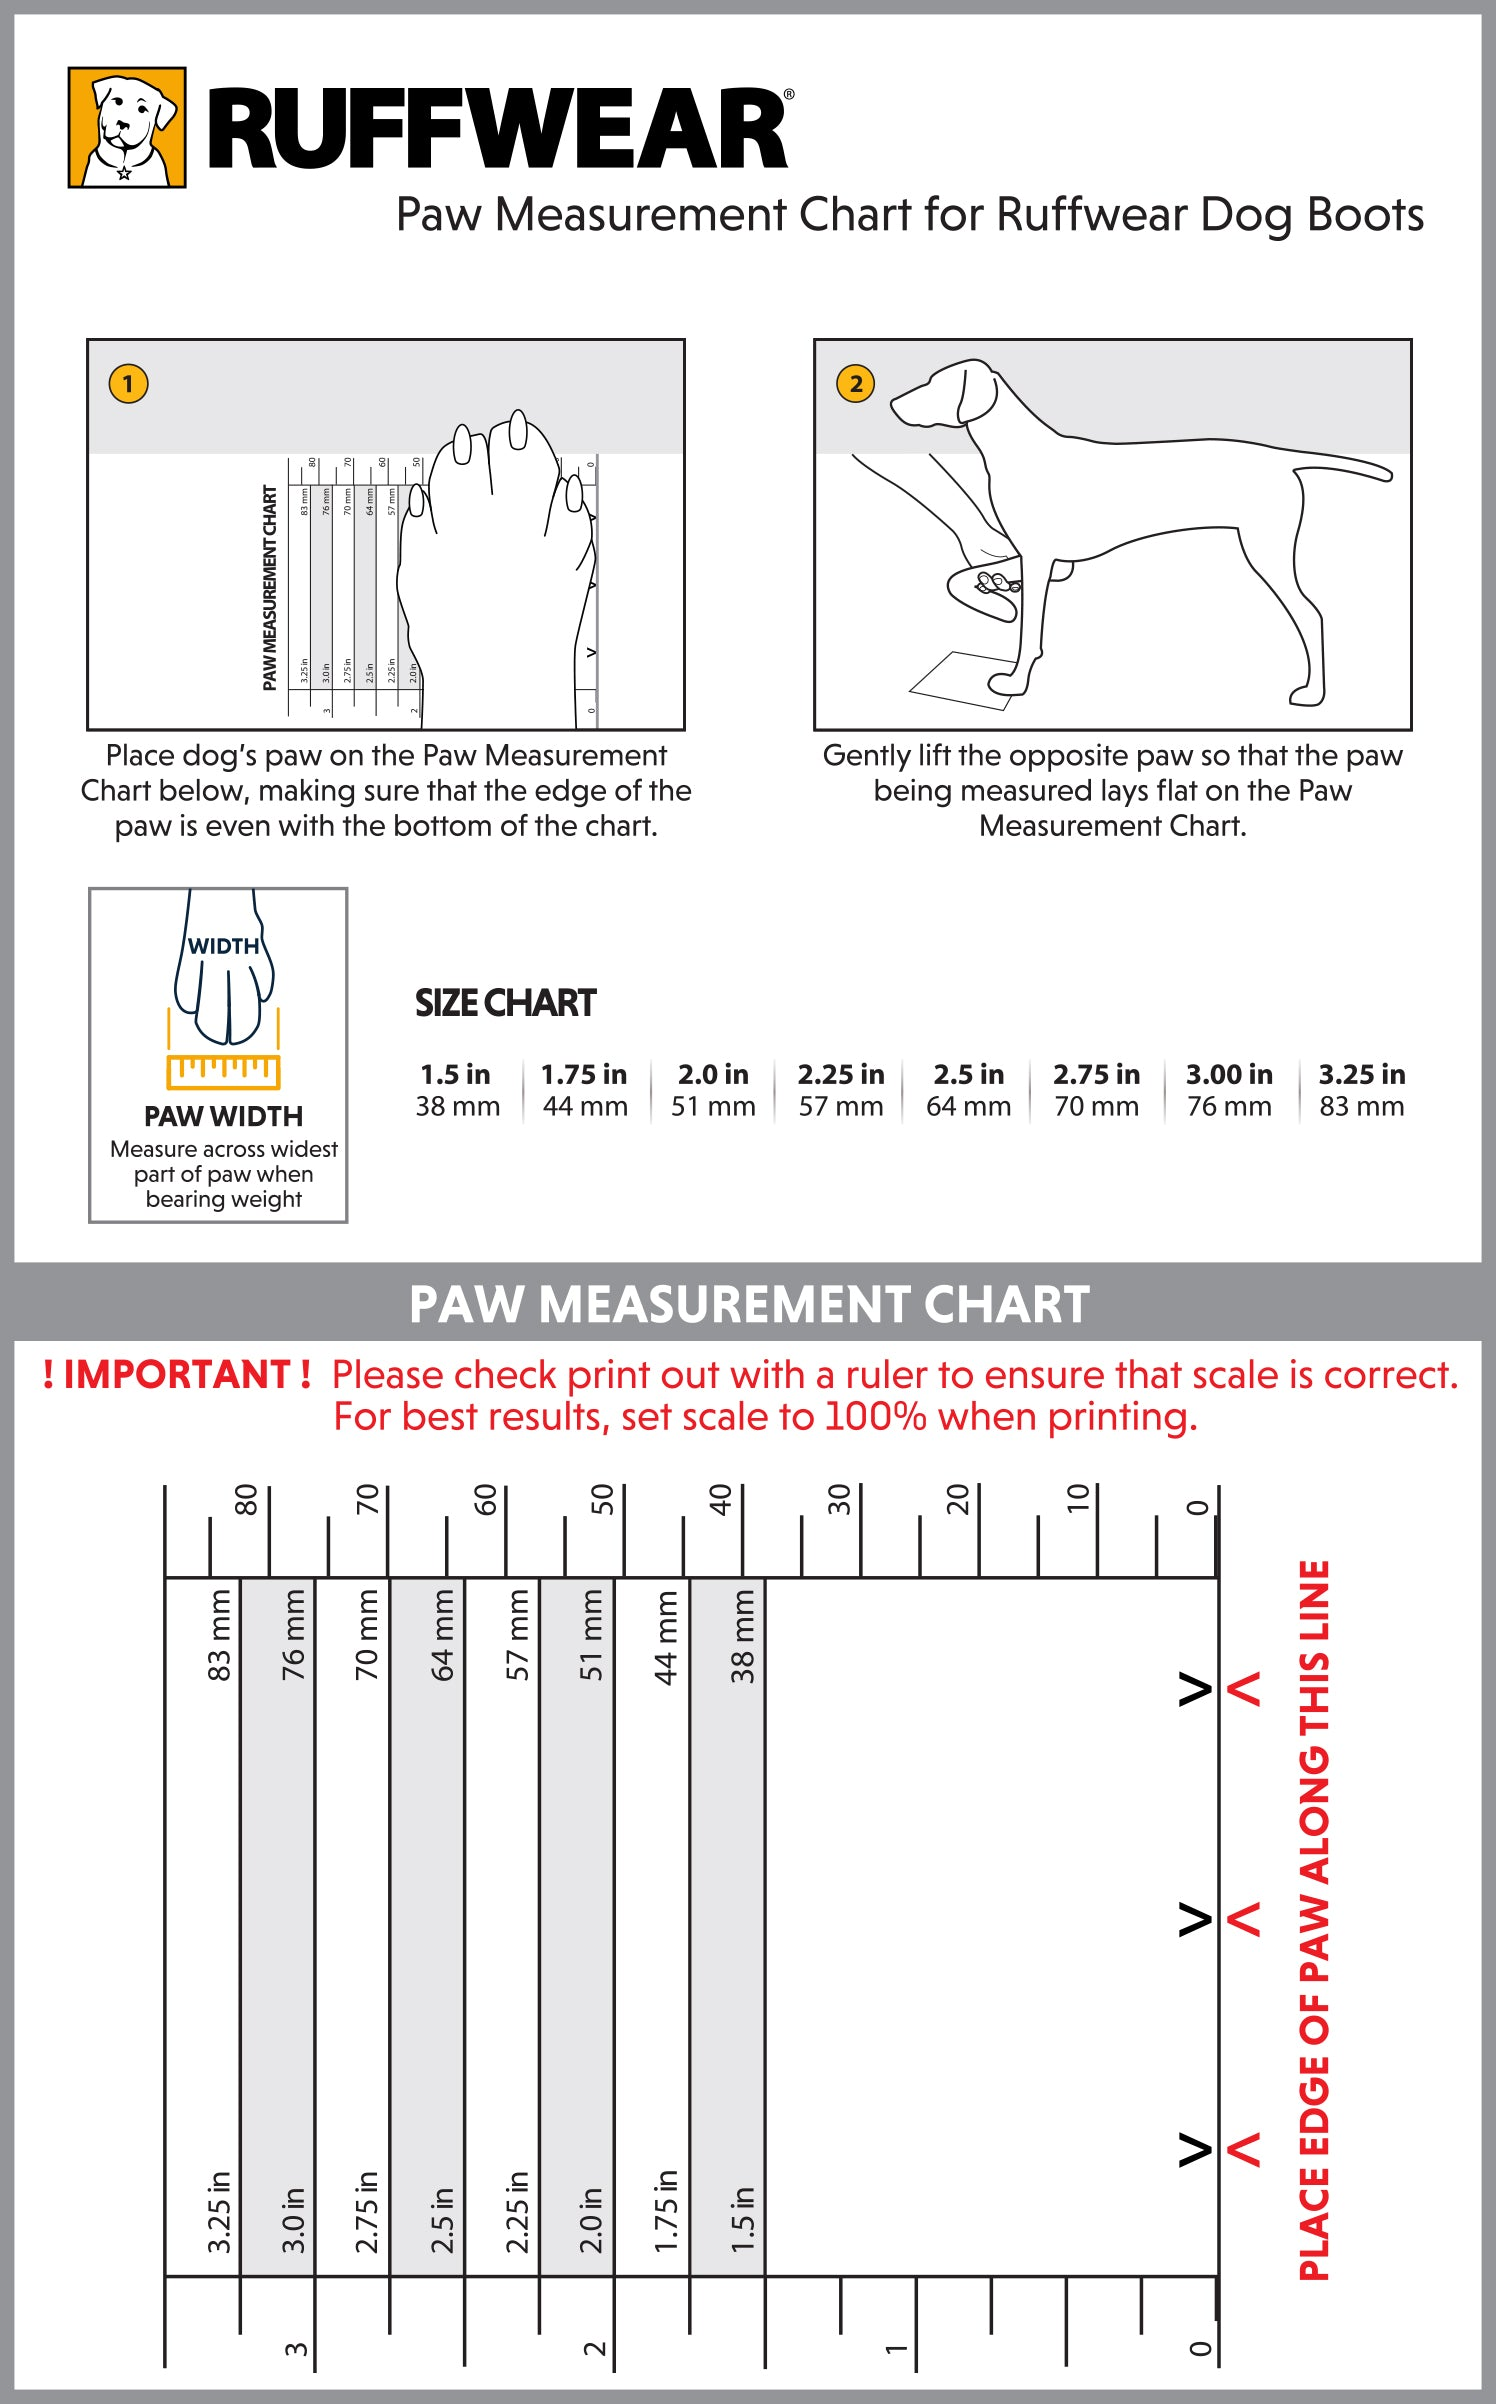 Ruffwear Paw Measurement Chart for Ruffwear Dog Boots